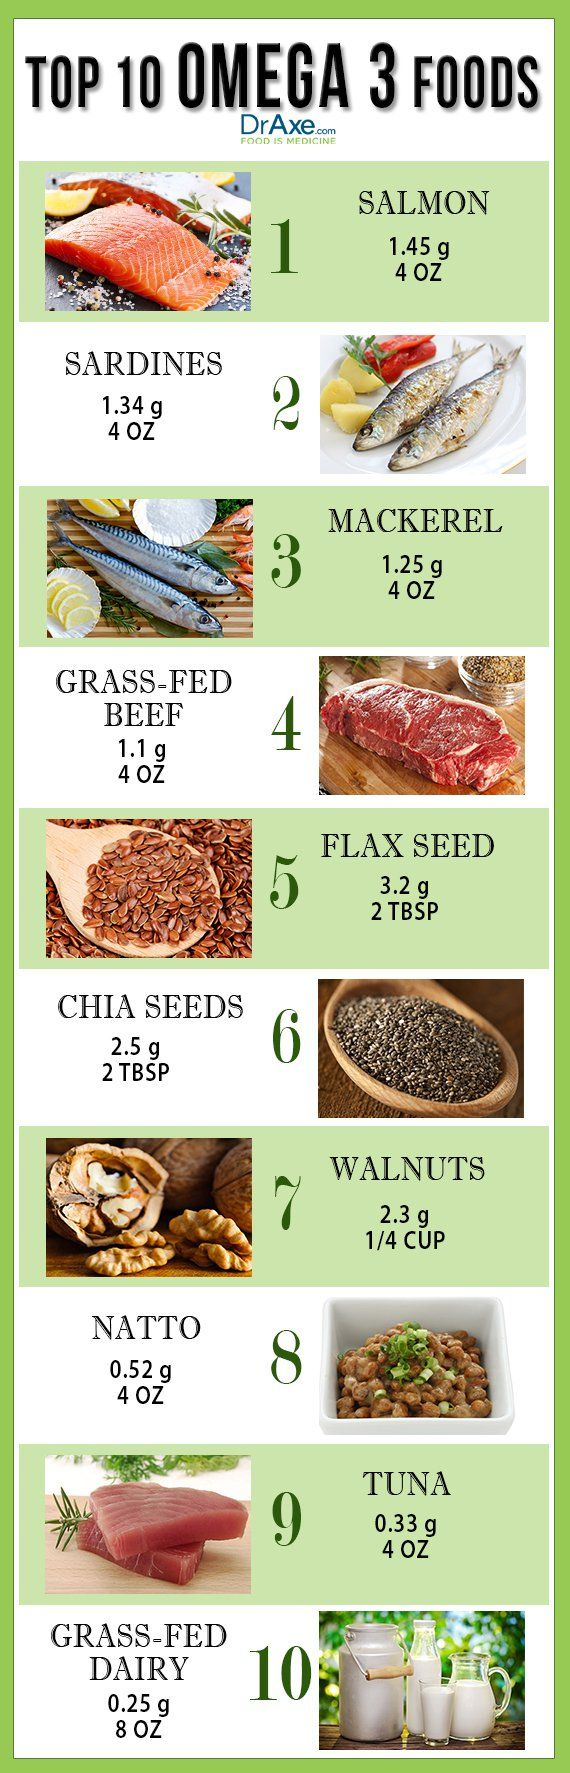 Omega 3 Benefits Plus Top 10 Omega 3 Foods List - DrAxe Food that help reduce bloodpressure